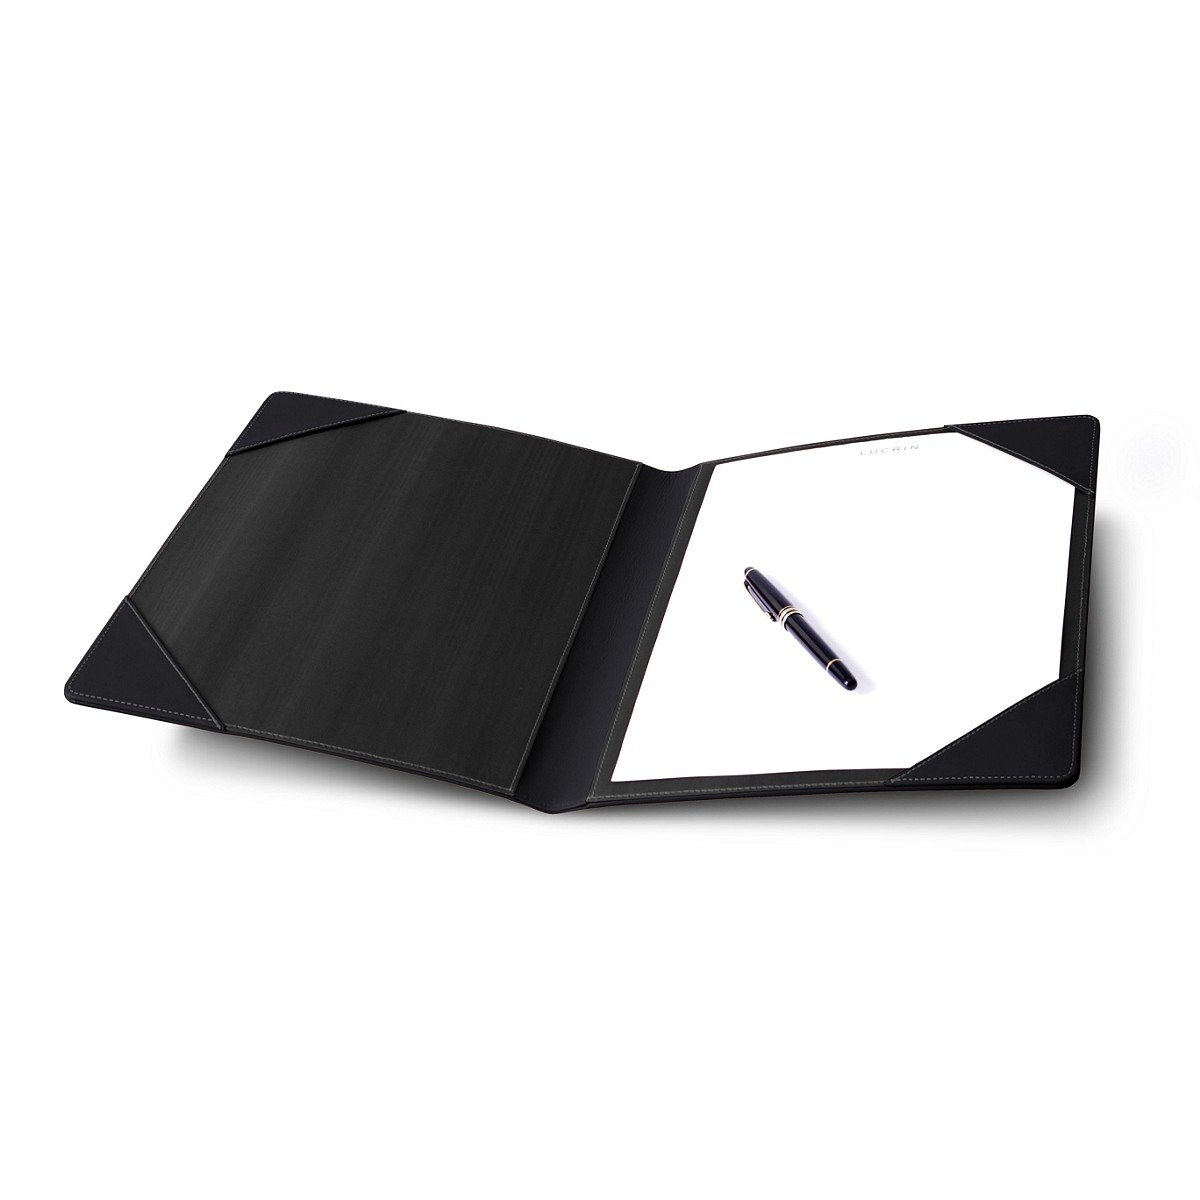 LUCRIN - Signature book - Smooth Cow Leather, Black